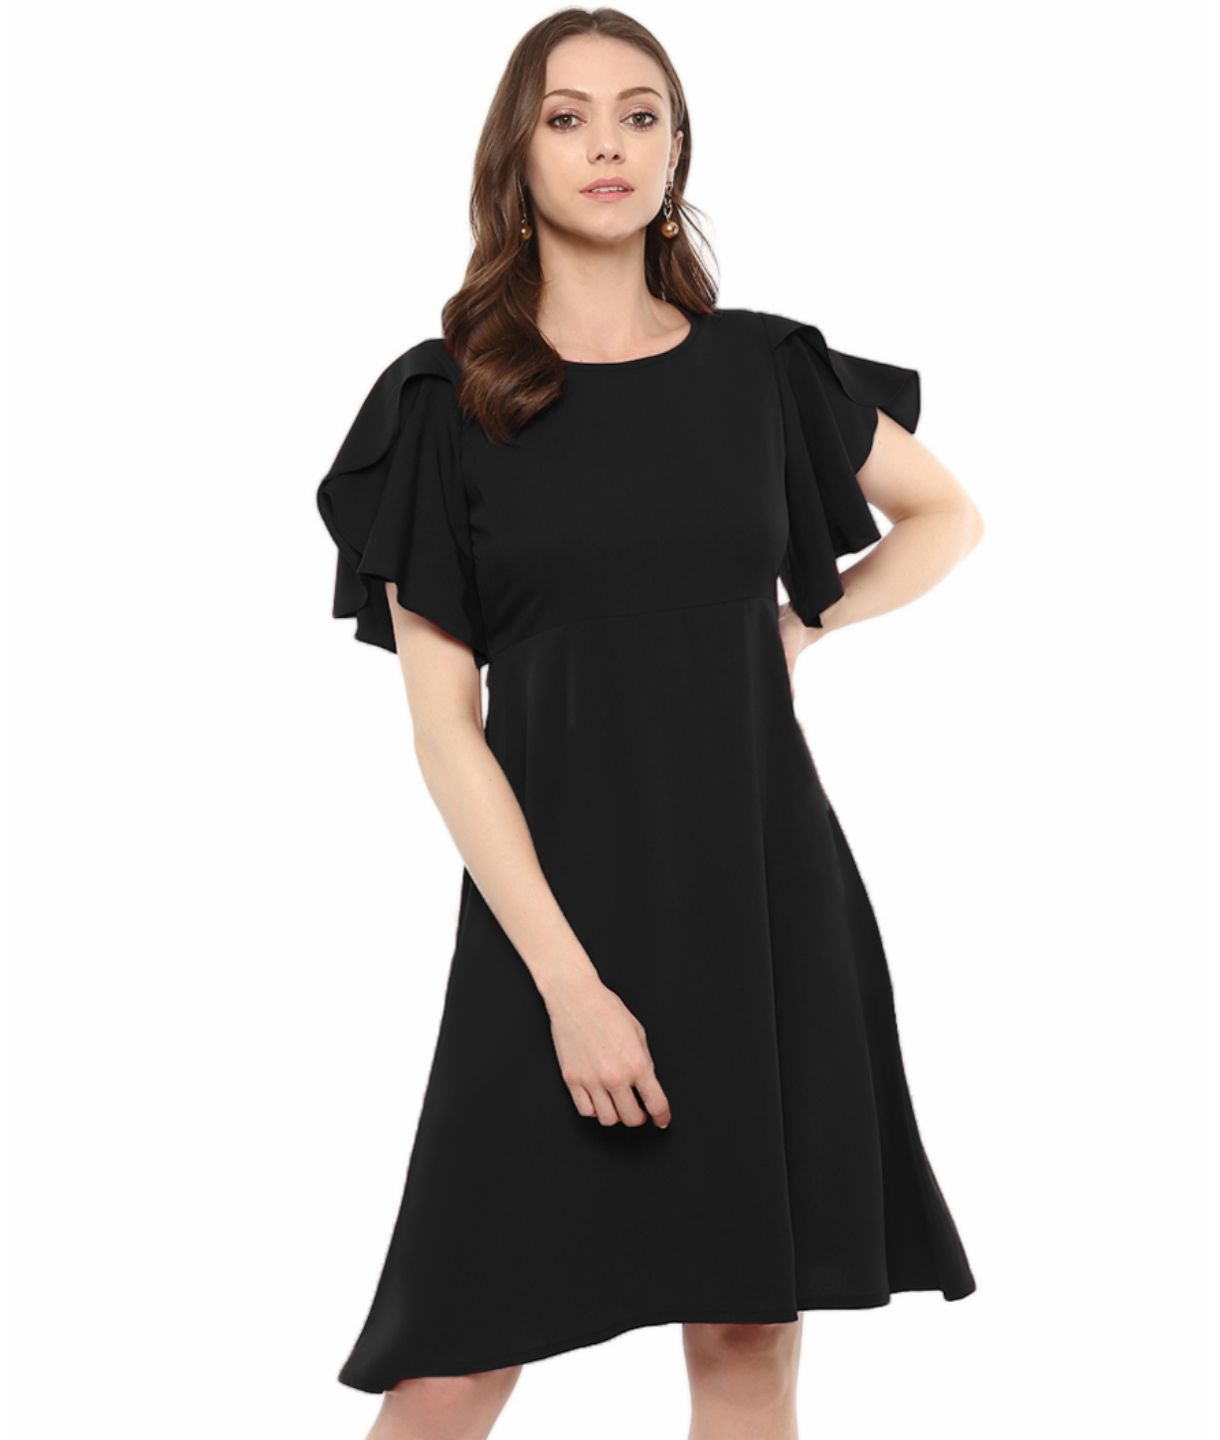 Uptownie Plus Black Solid Ruffle Sleeves Fit and Flare Crepe Skater Dress